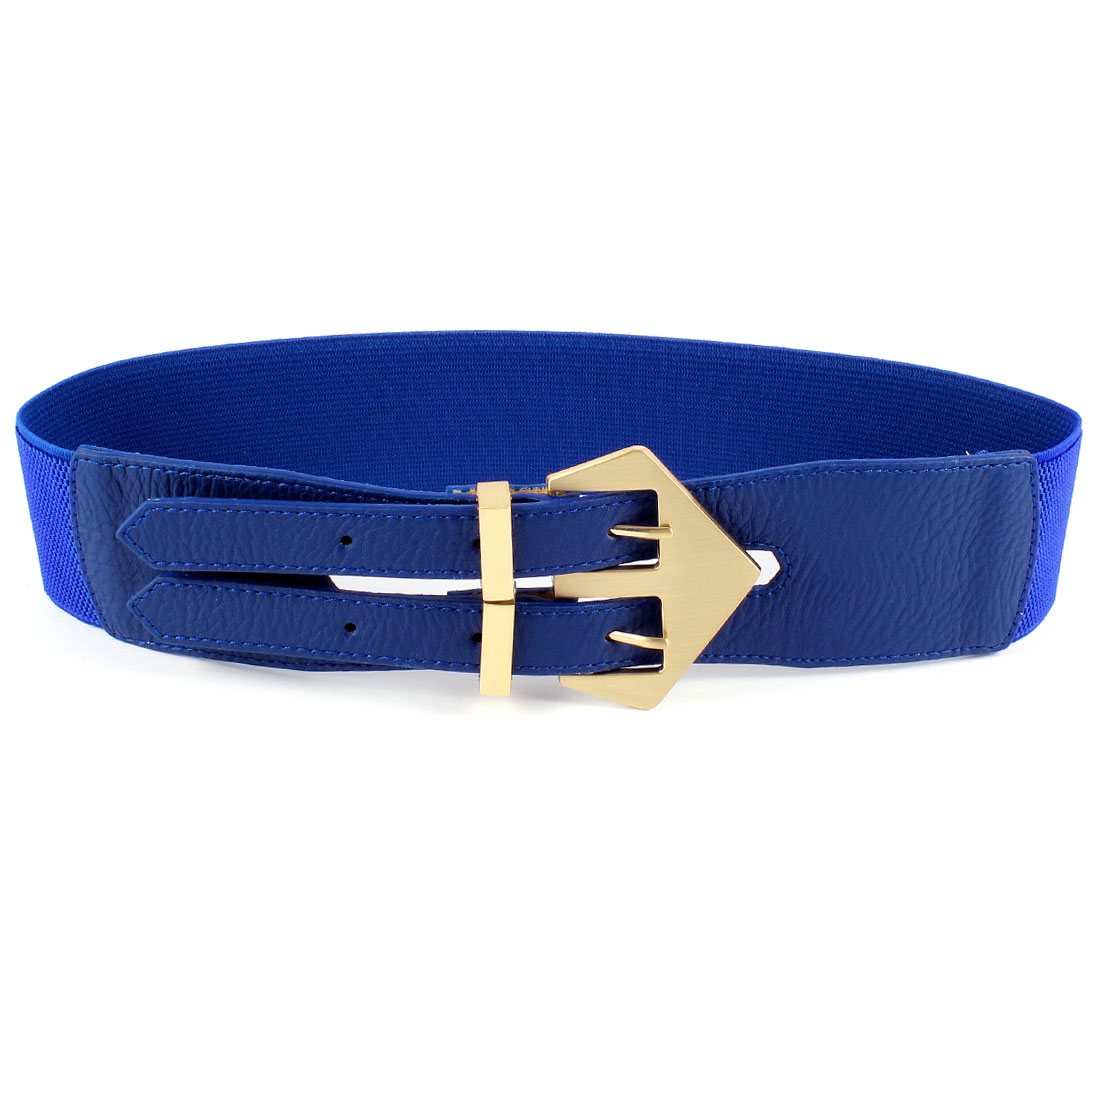 Double Pin Buckle 6cm Wide Adjustable Elastic Belt Blue for Ladies